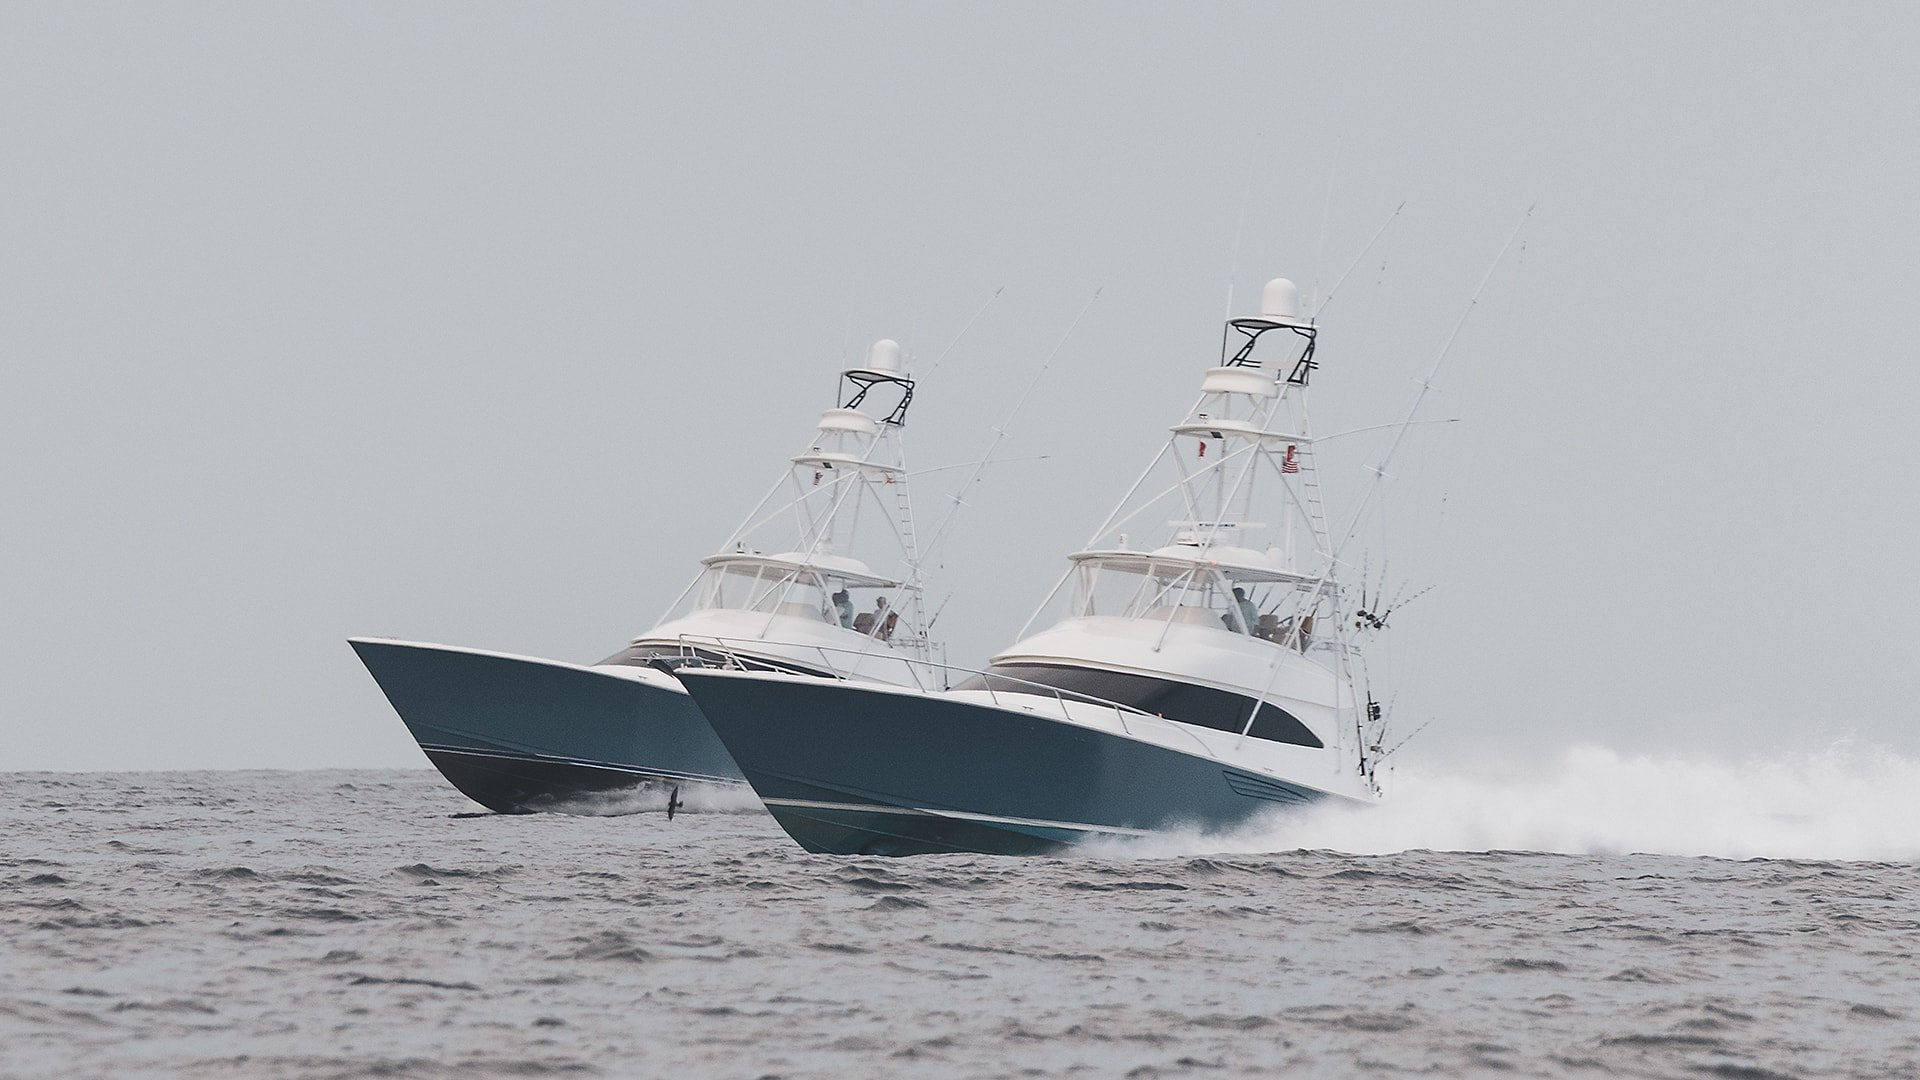 Two Viking Yachts Side by Side At The White Marlin Open